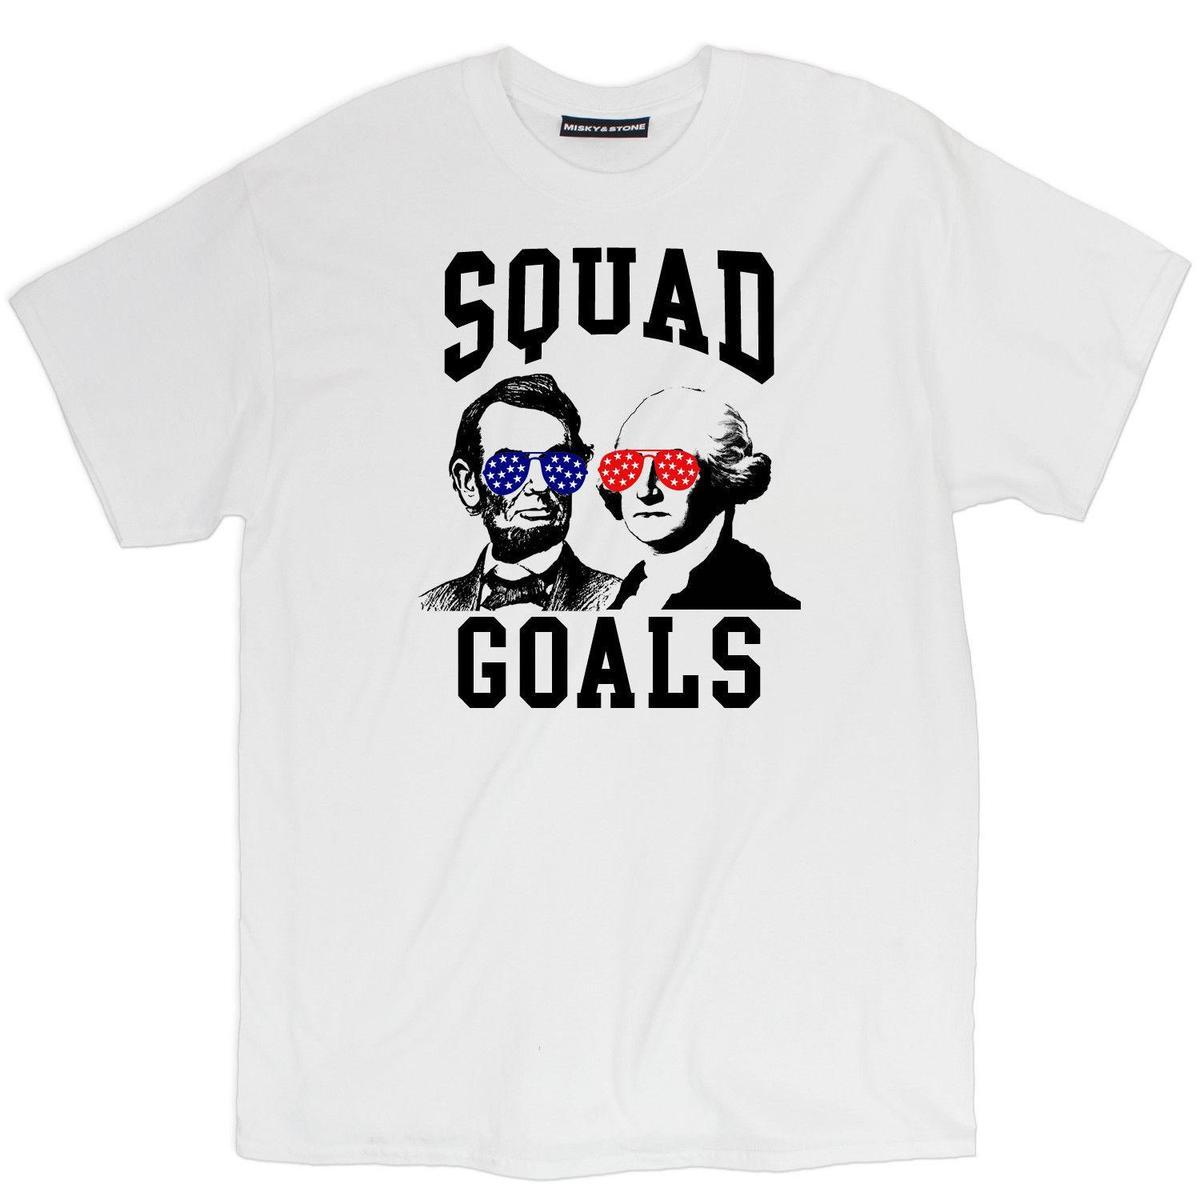 fce852e4 Misky & Stone Squad Goals Funny Presidents Independence Day 4th Of July  Shirts Buy T Shirt Fun Shirt From Linnan0003, $14.67| DHgate.Com